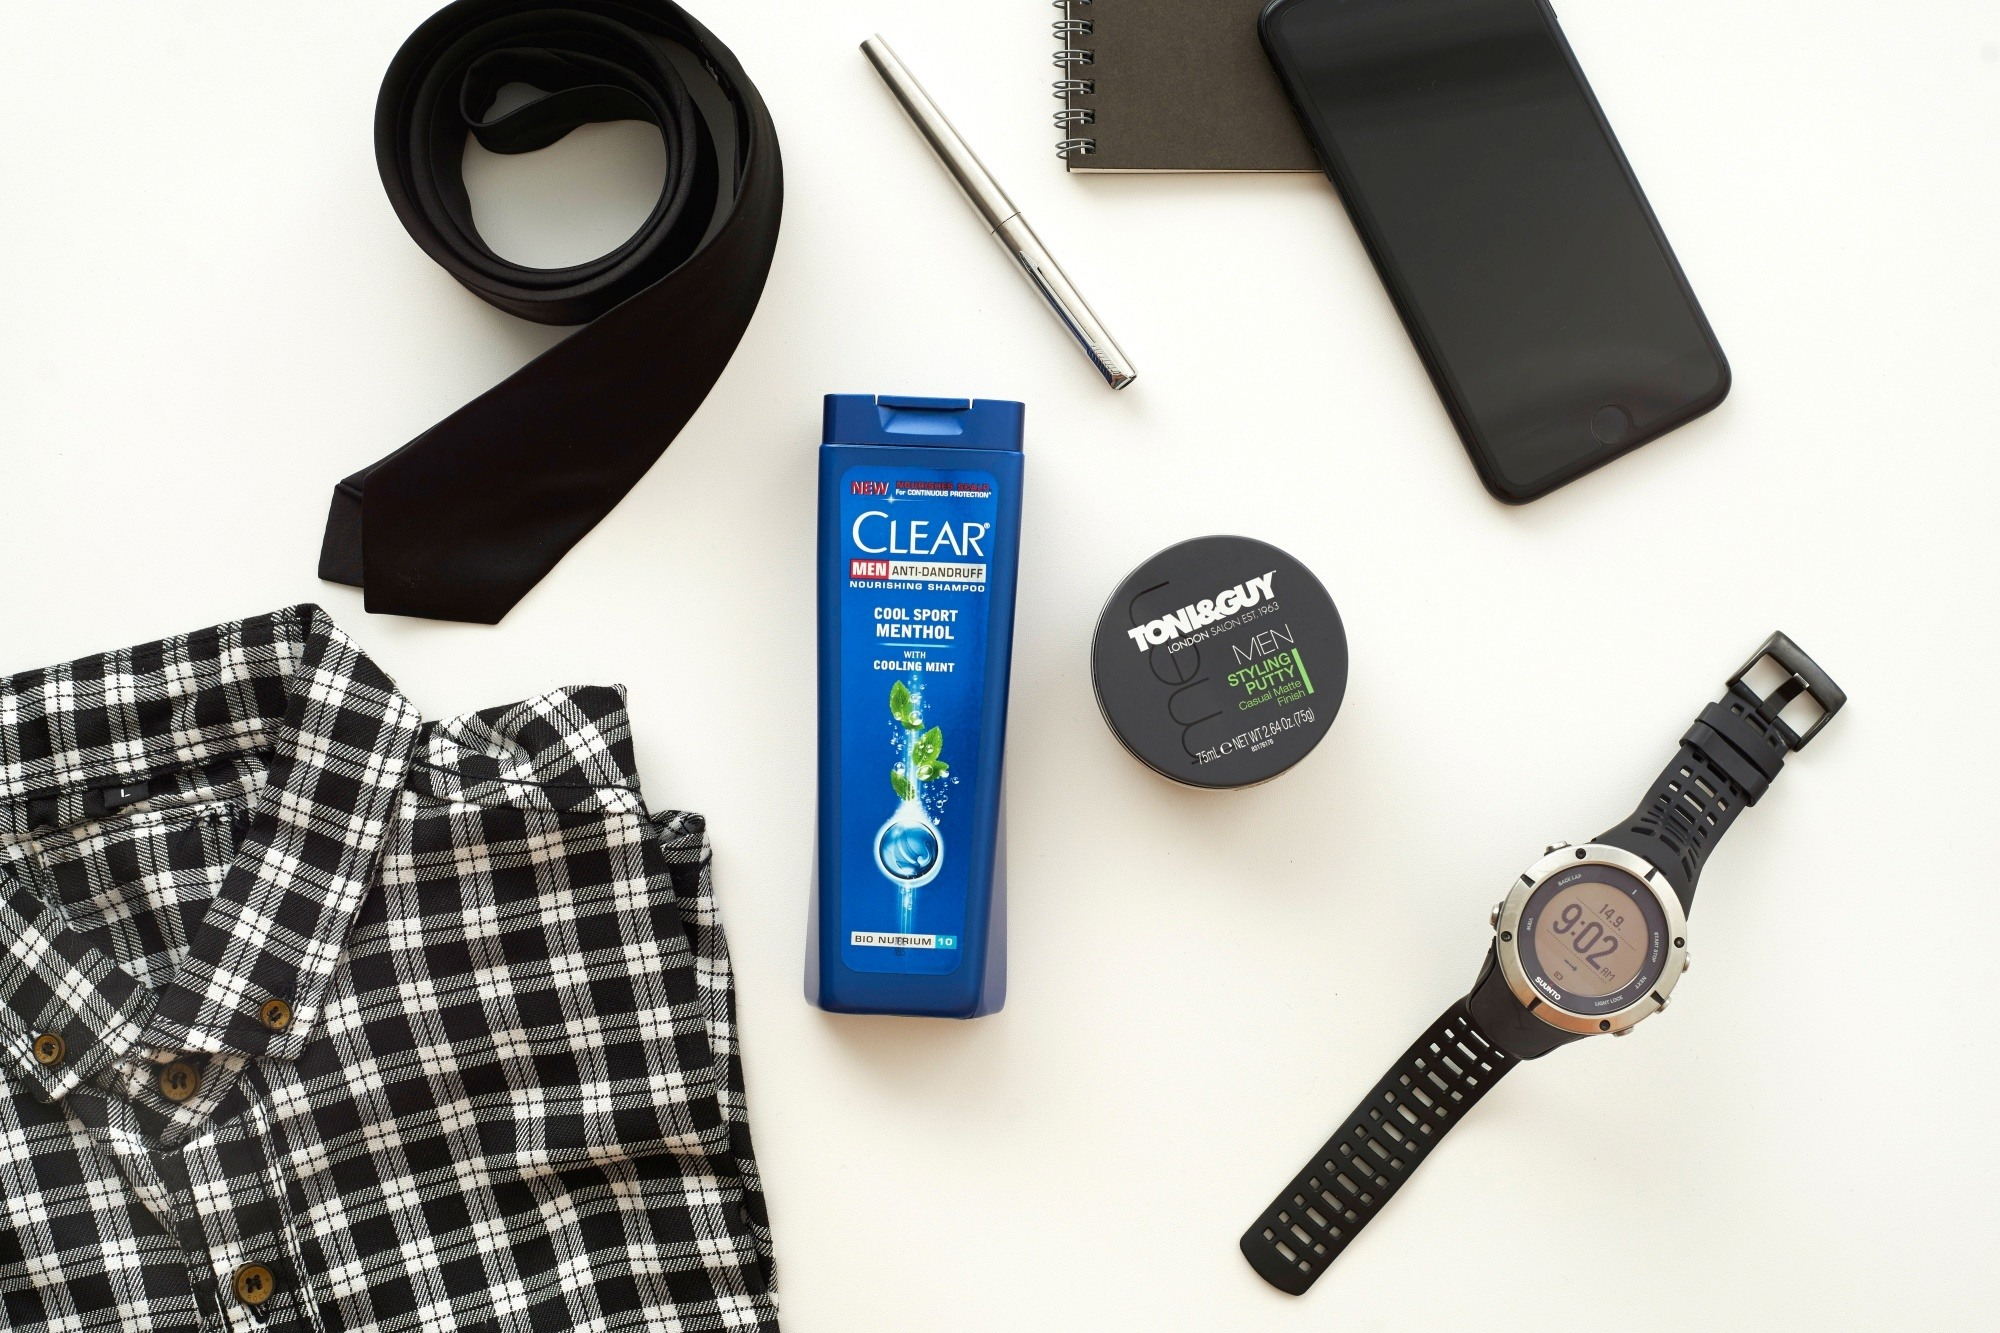 Men's grooming habits: Flatlay of men's shampoo and styling wax and men's clothes and accessories